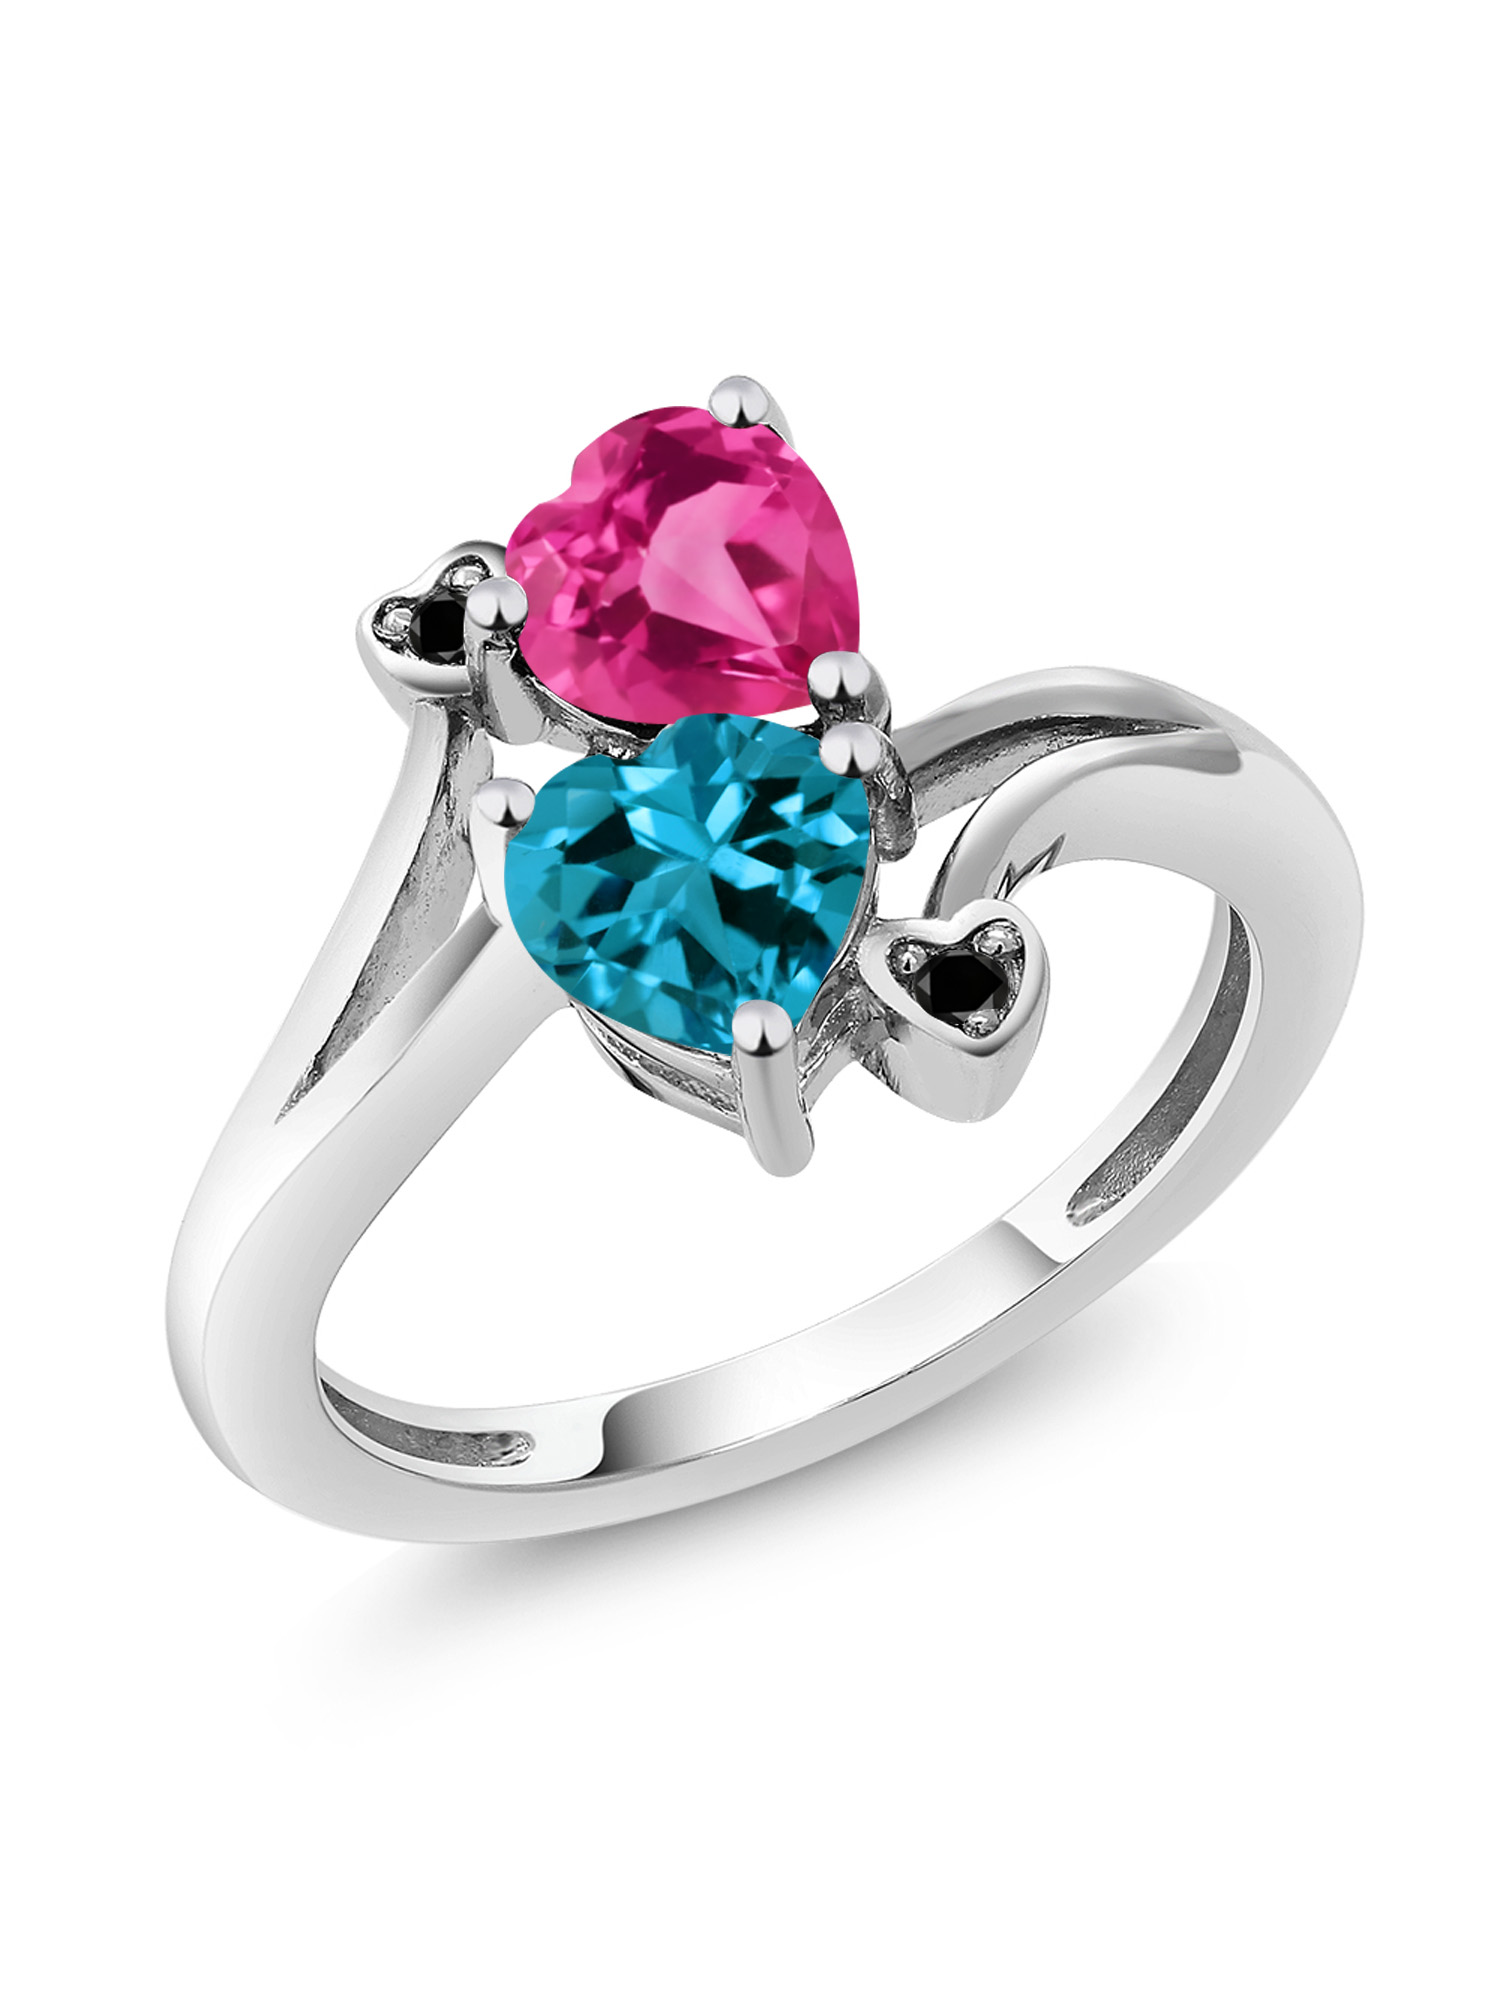 1.78 Ct Heart Shape London Blue Topaz Pink Created Sapphire 10K White Gold Ring by